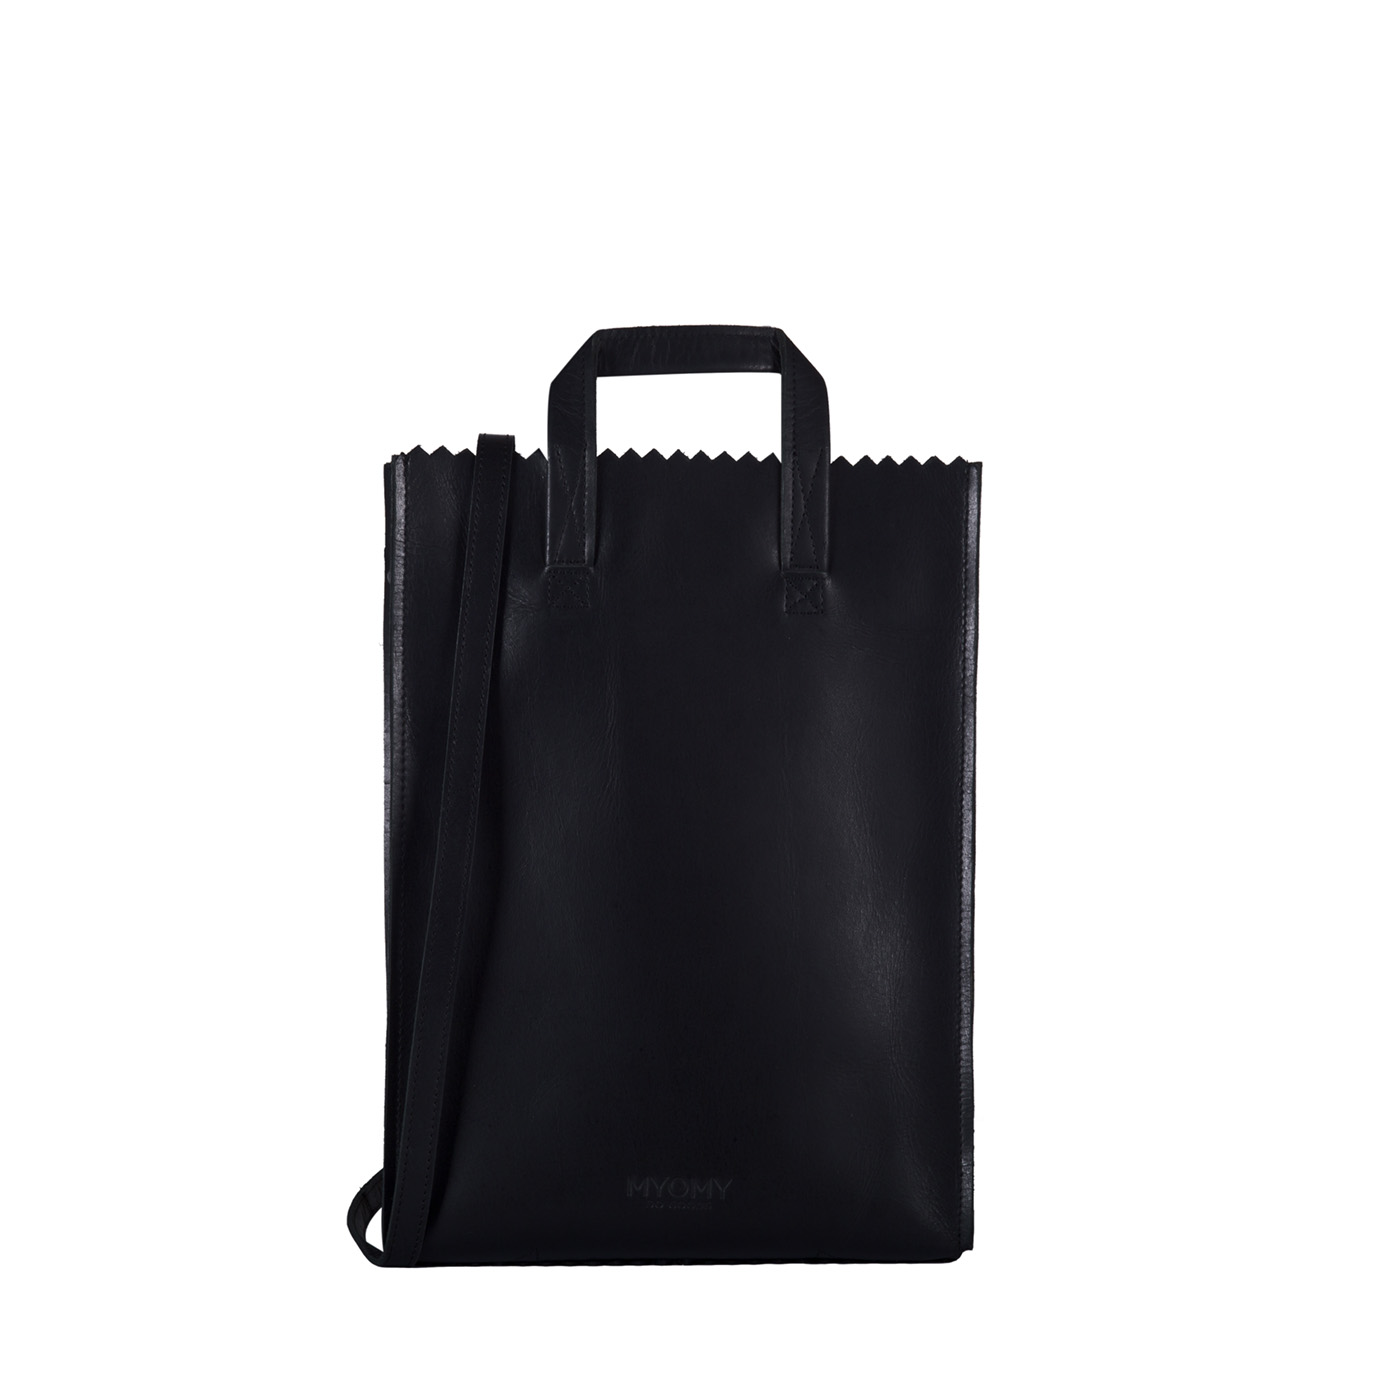 MY PAPER BAG Handy short handle – hunter waxy black